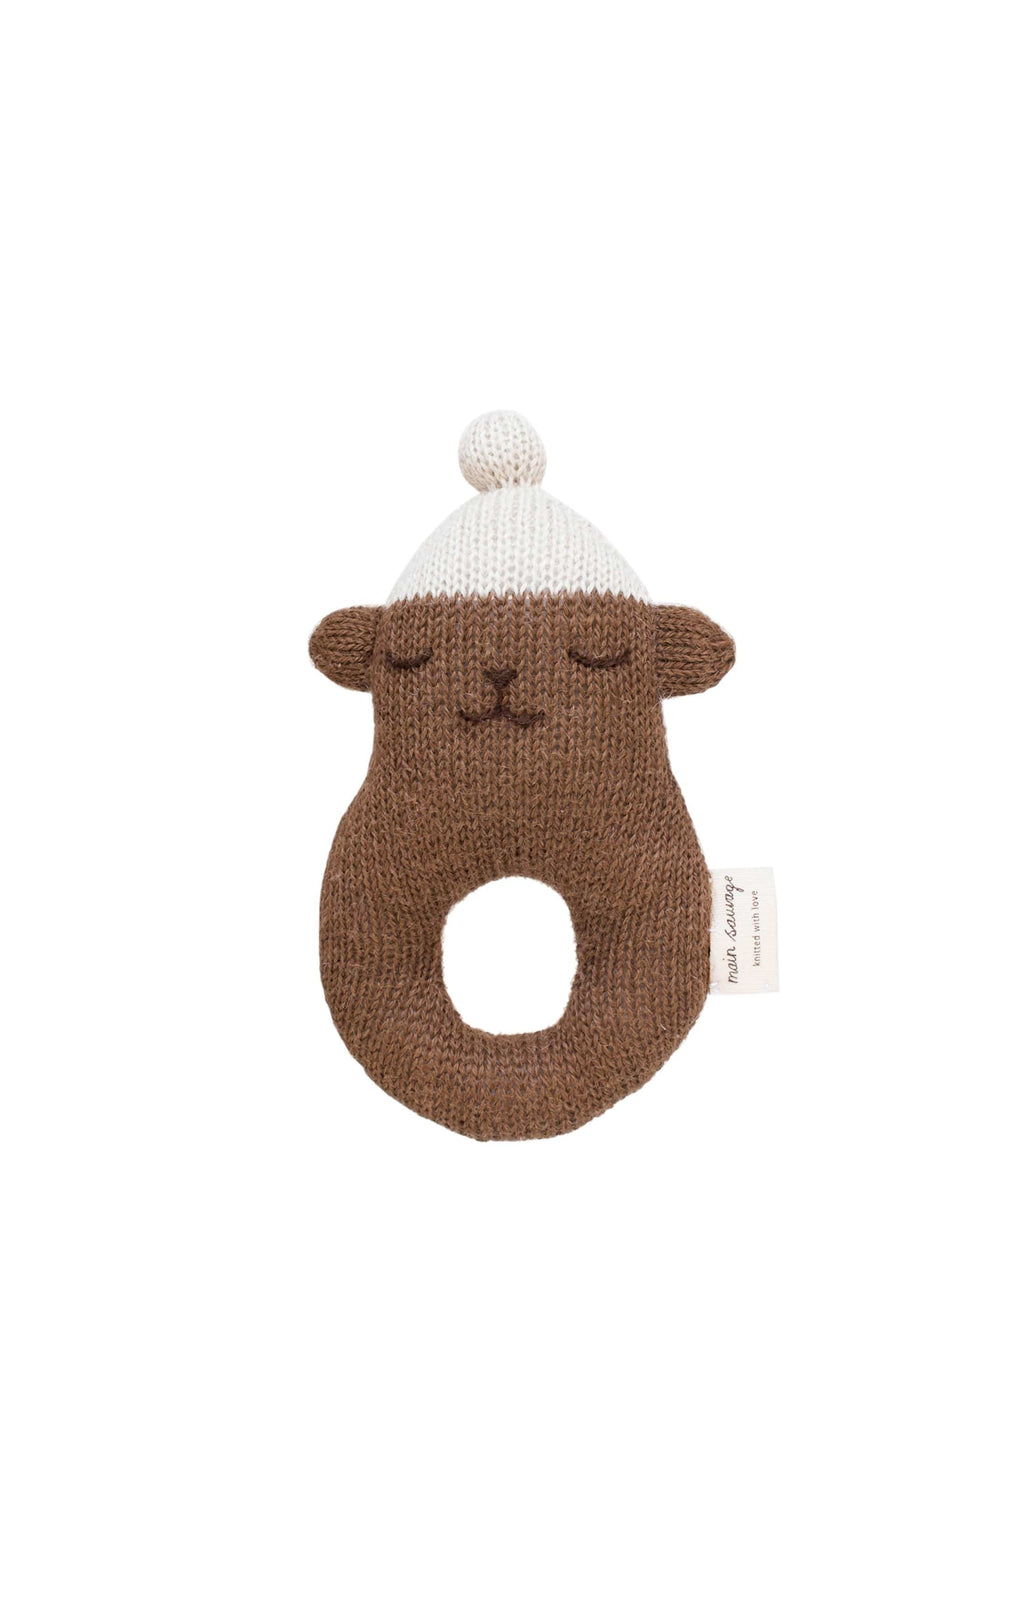 Main Sauvage Teddy Rattle